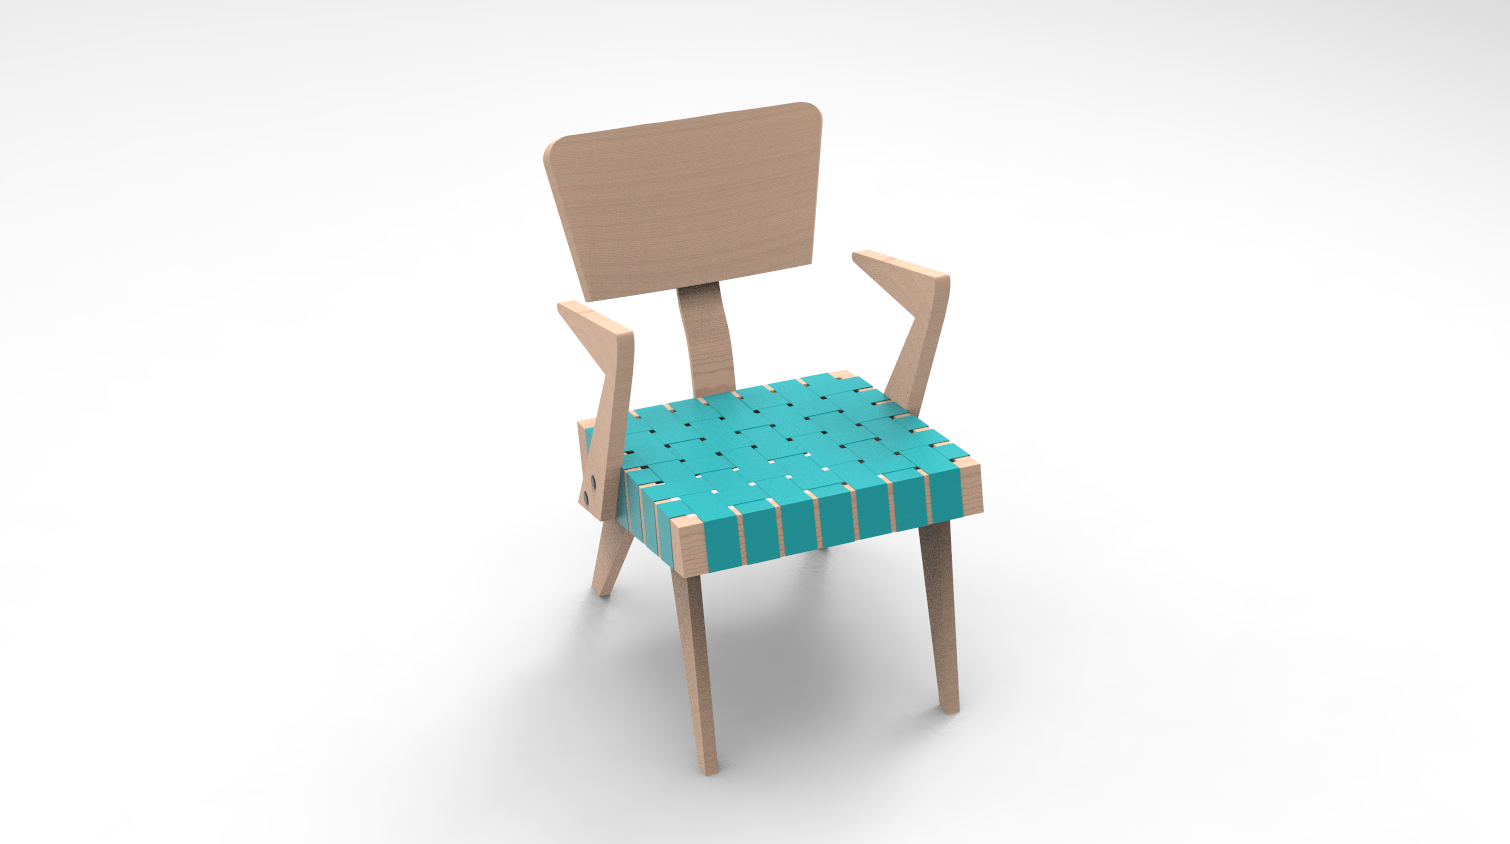 3D designed chair spanner